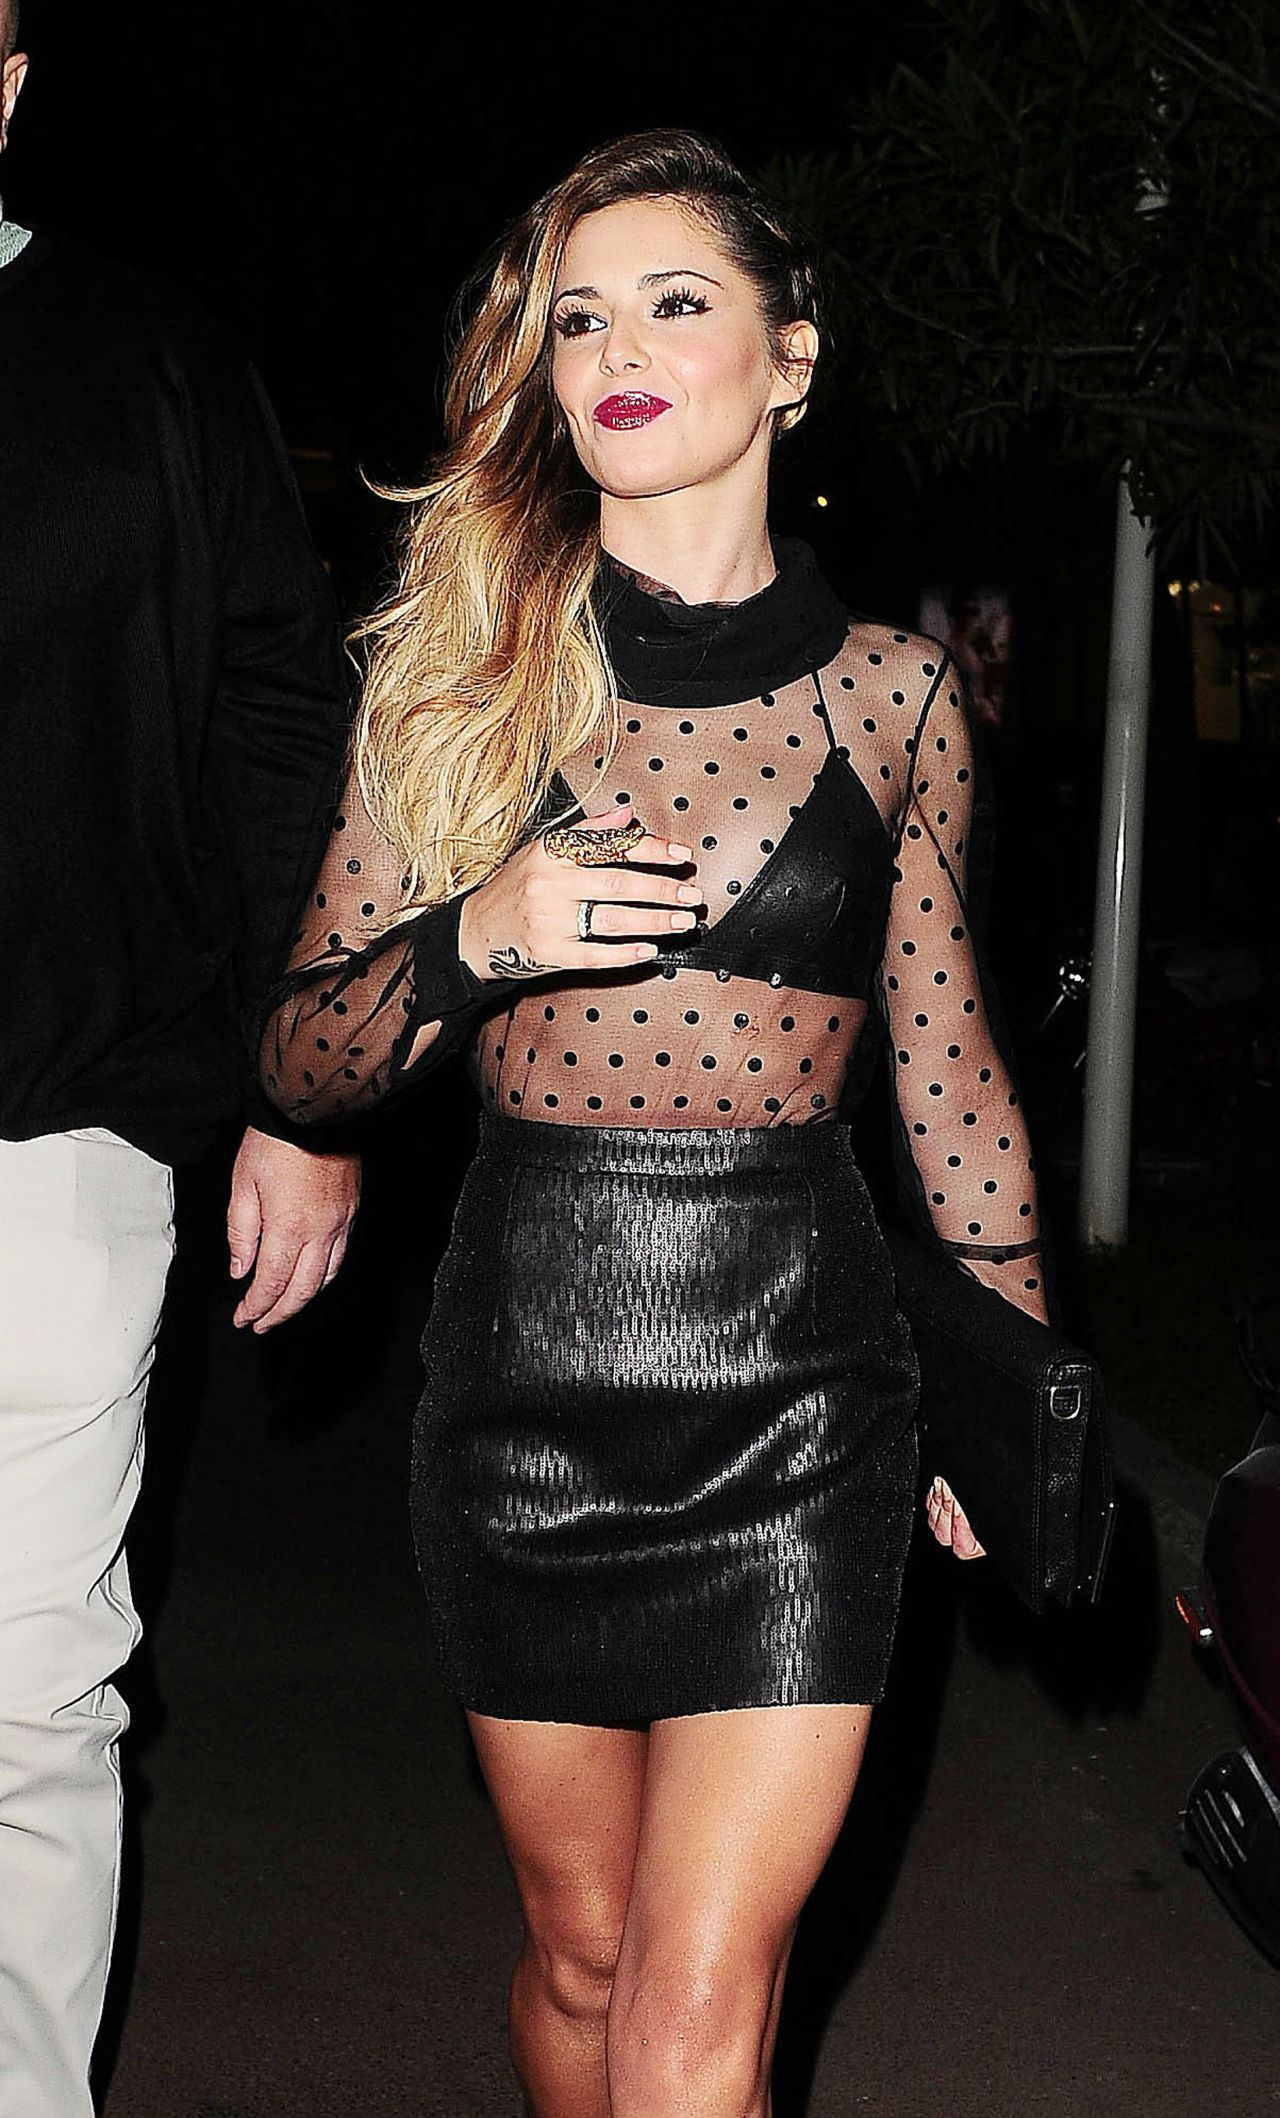 Cheryl Cole Night Out Style - Cosy Box Club in Cannes - May 2014